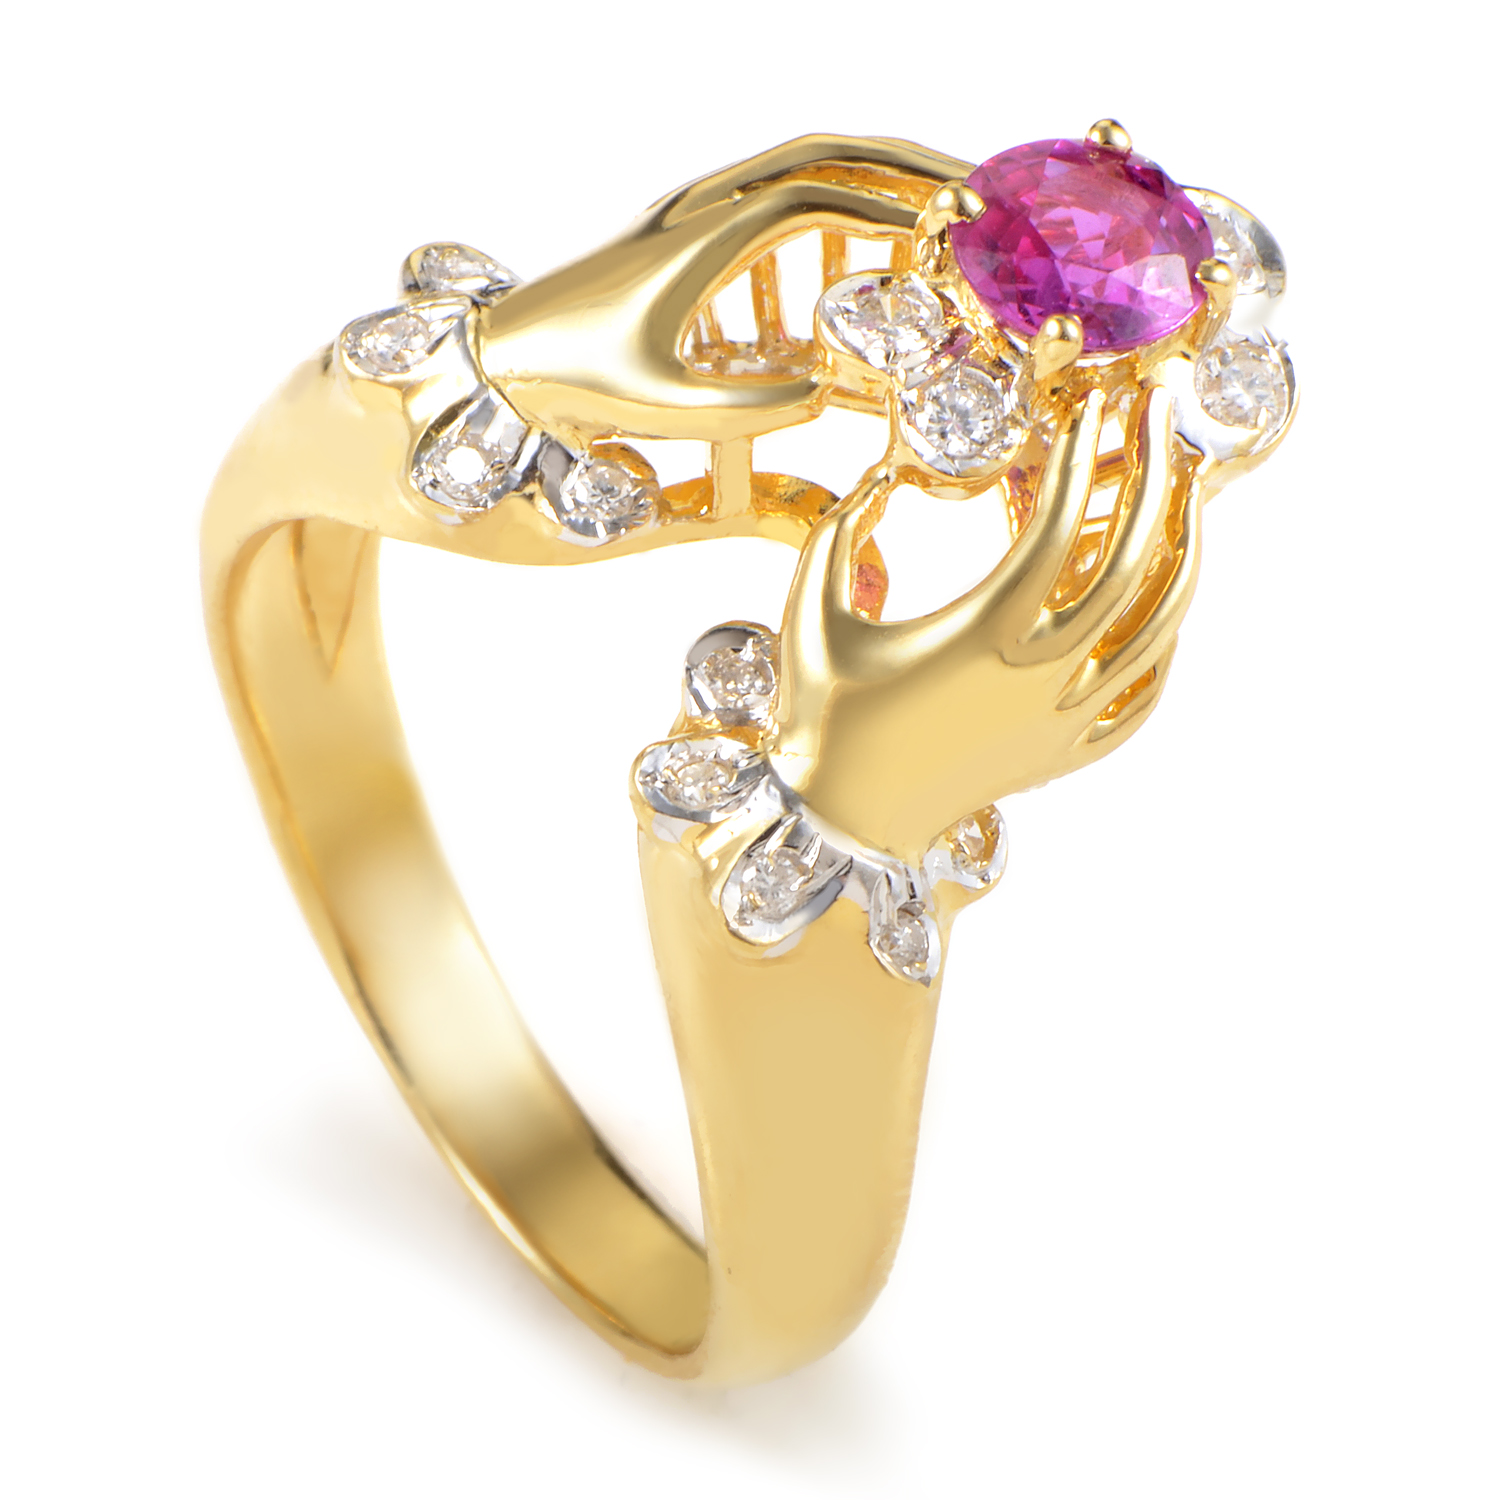 Women's 18K Yellow Gold Diamond & Ruby Hands Ring MFC10-061316